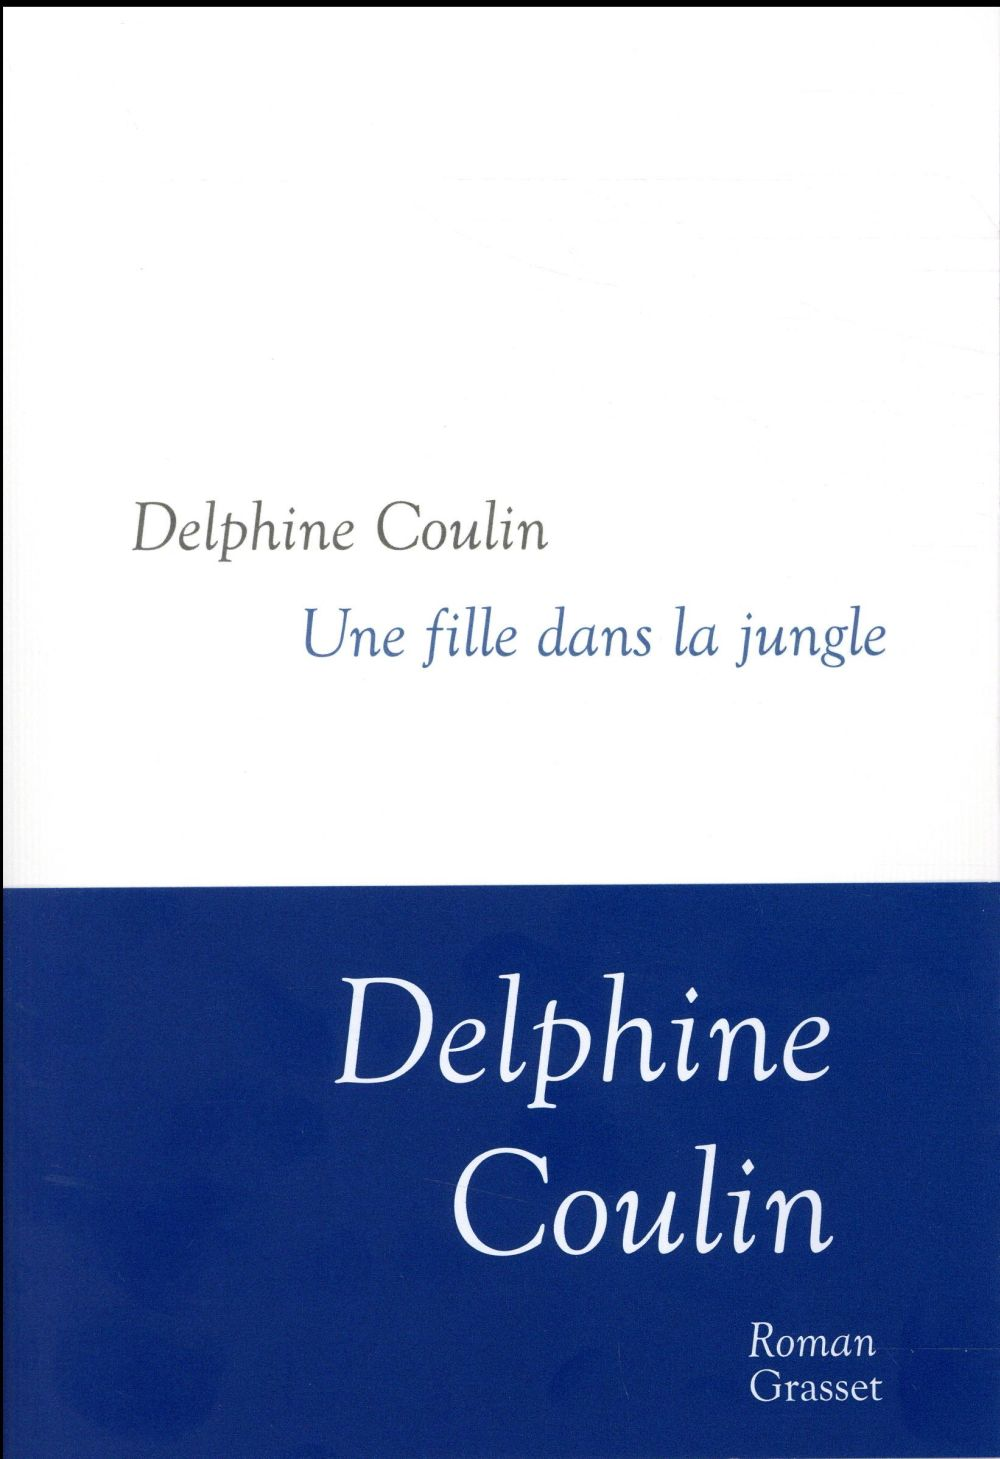 Coulin Delphine - UNE FILLE DANS LA JUNGLE